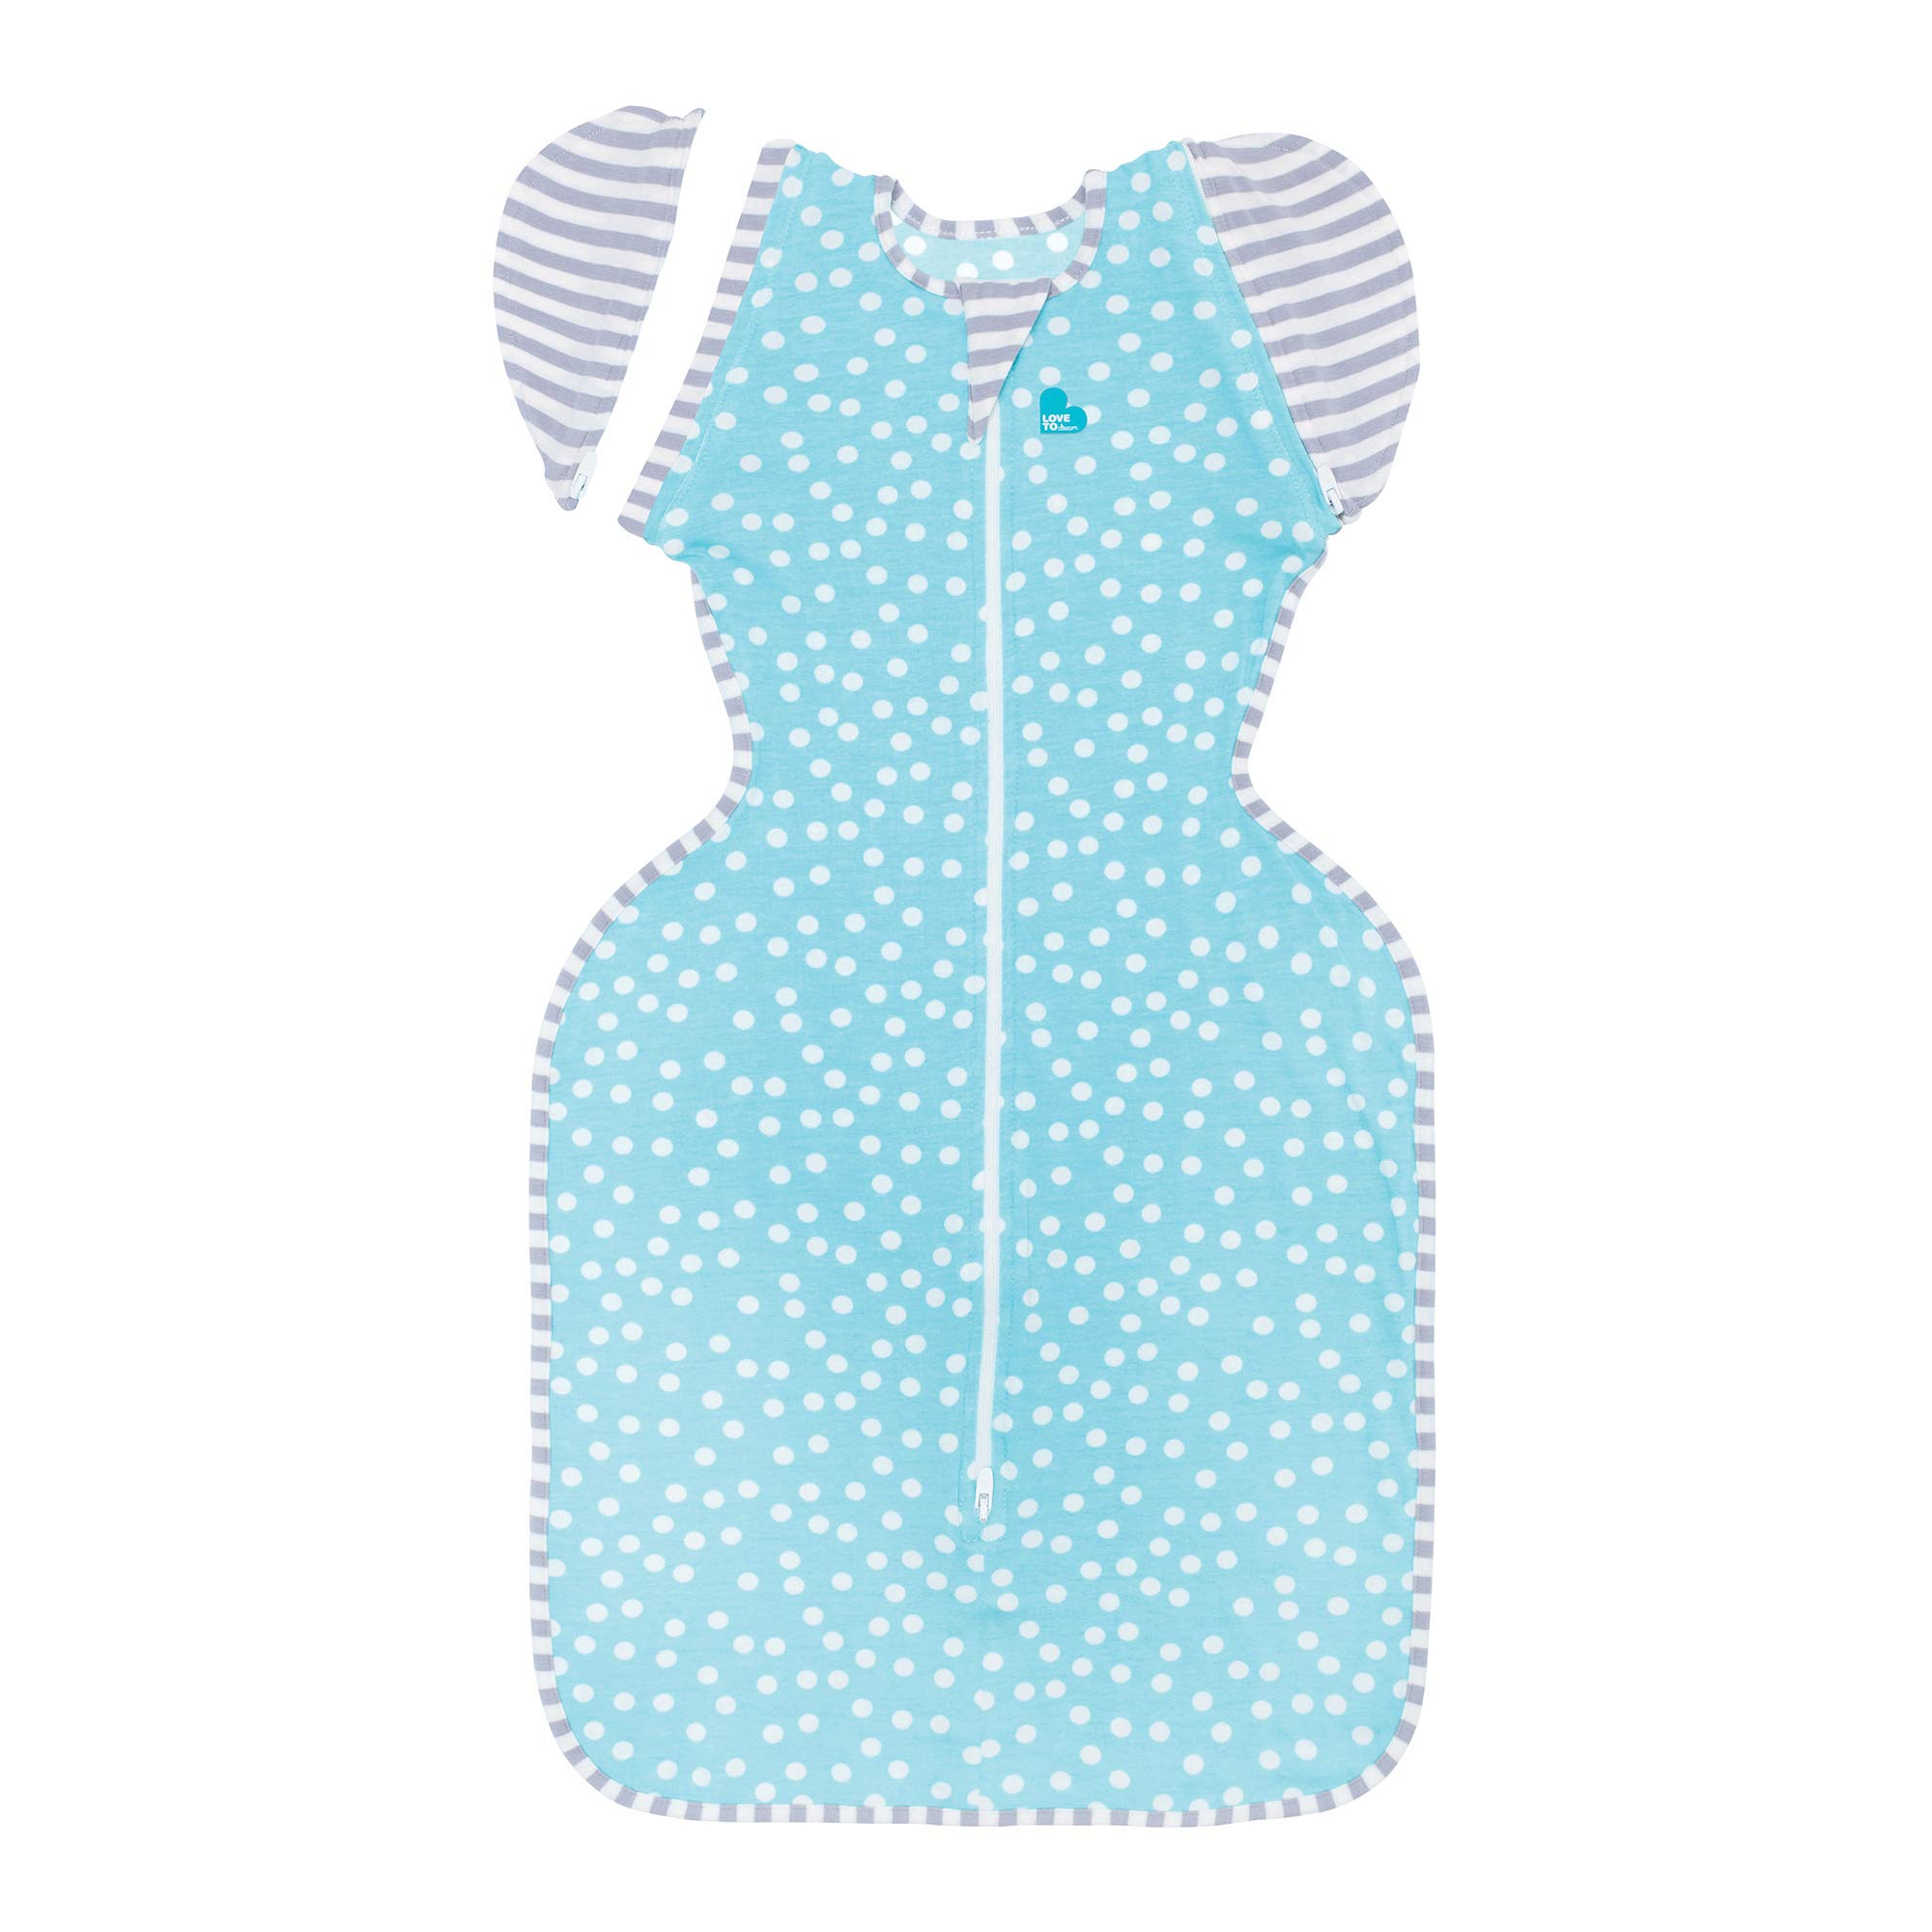 Love To Dream Swaddle UP 50/50 Transition Bag Lite, Aqua, Medium, 13-19 lbs, Patented Zip-Off Wings, Gently Help Baby Safely Transition from Being swaddled to arms Free Before Rolling Over by Love to Dream (Image #1)